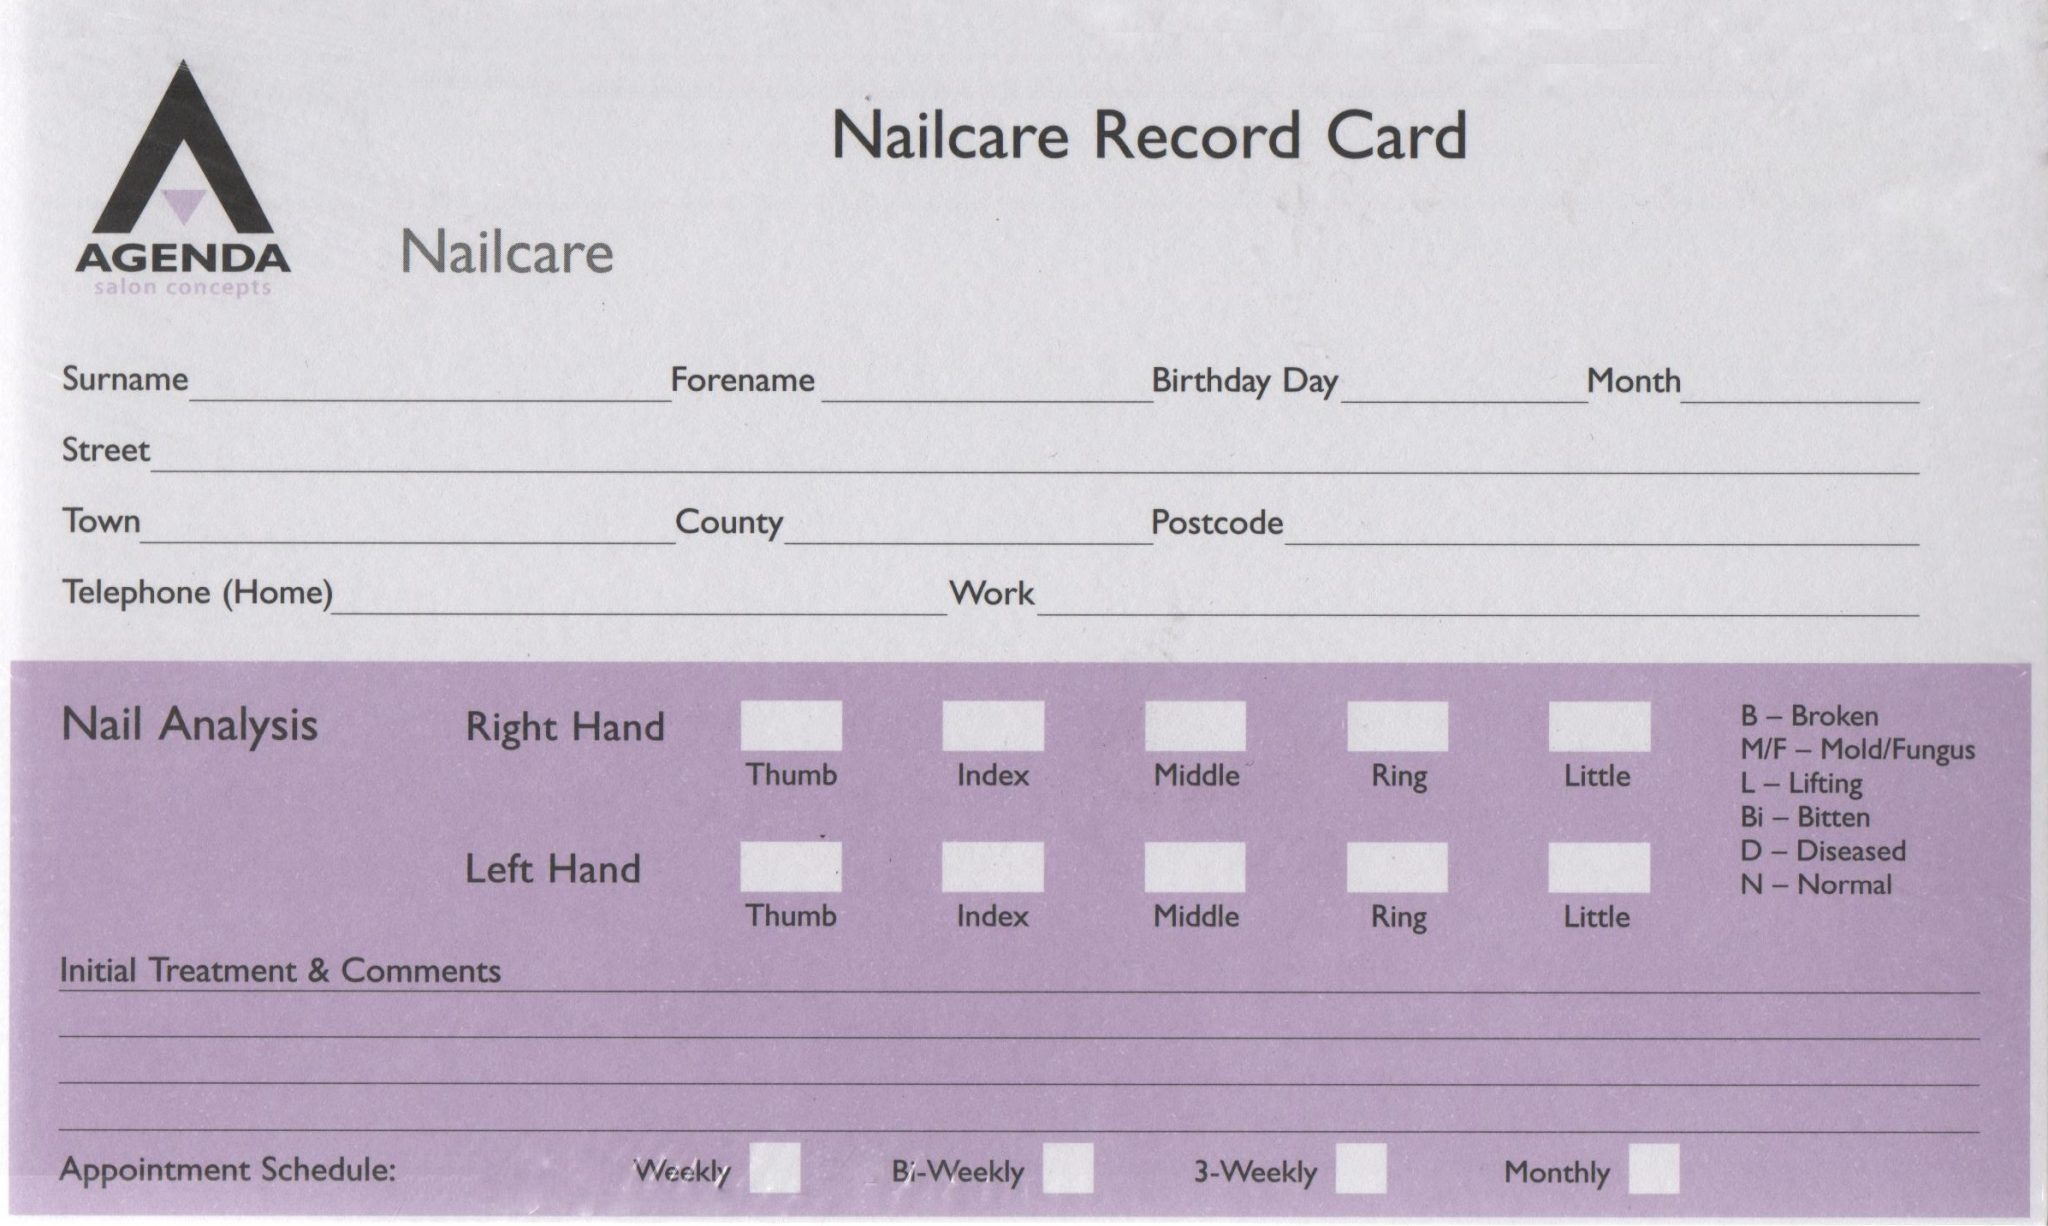 Agenda Client Service Record Cards - Nailcare